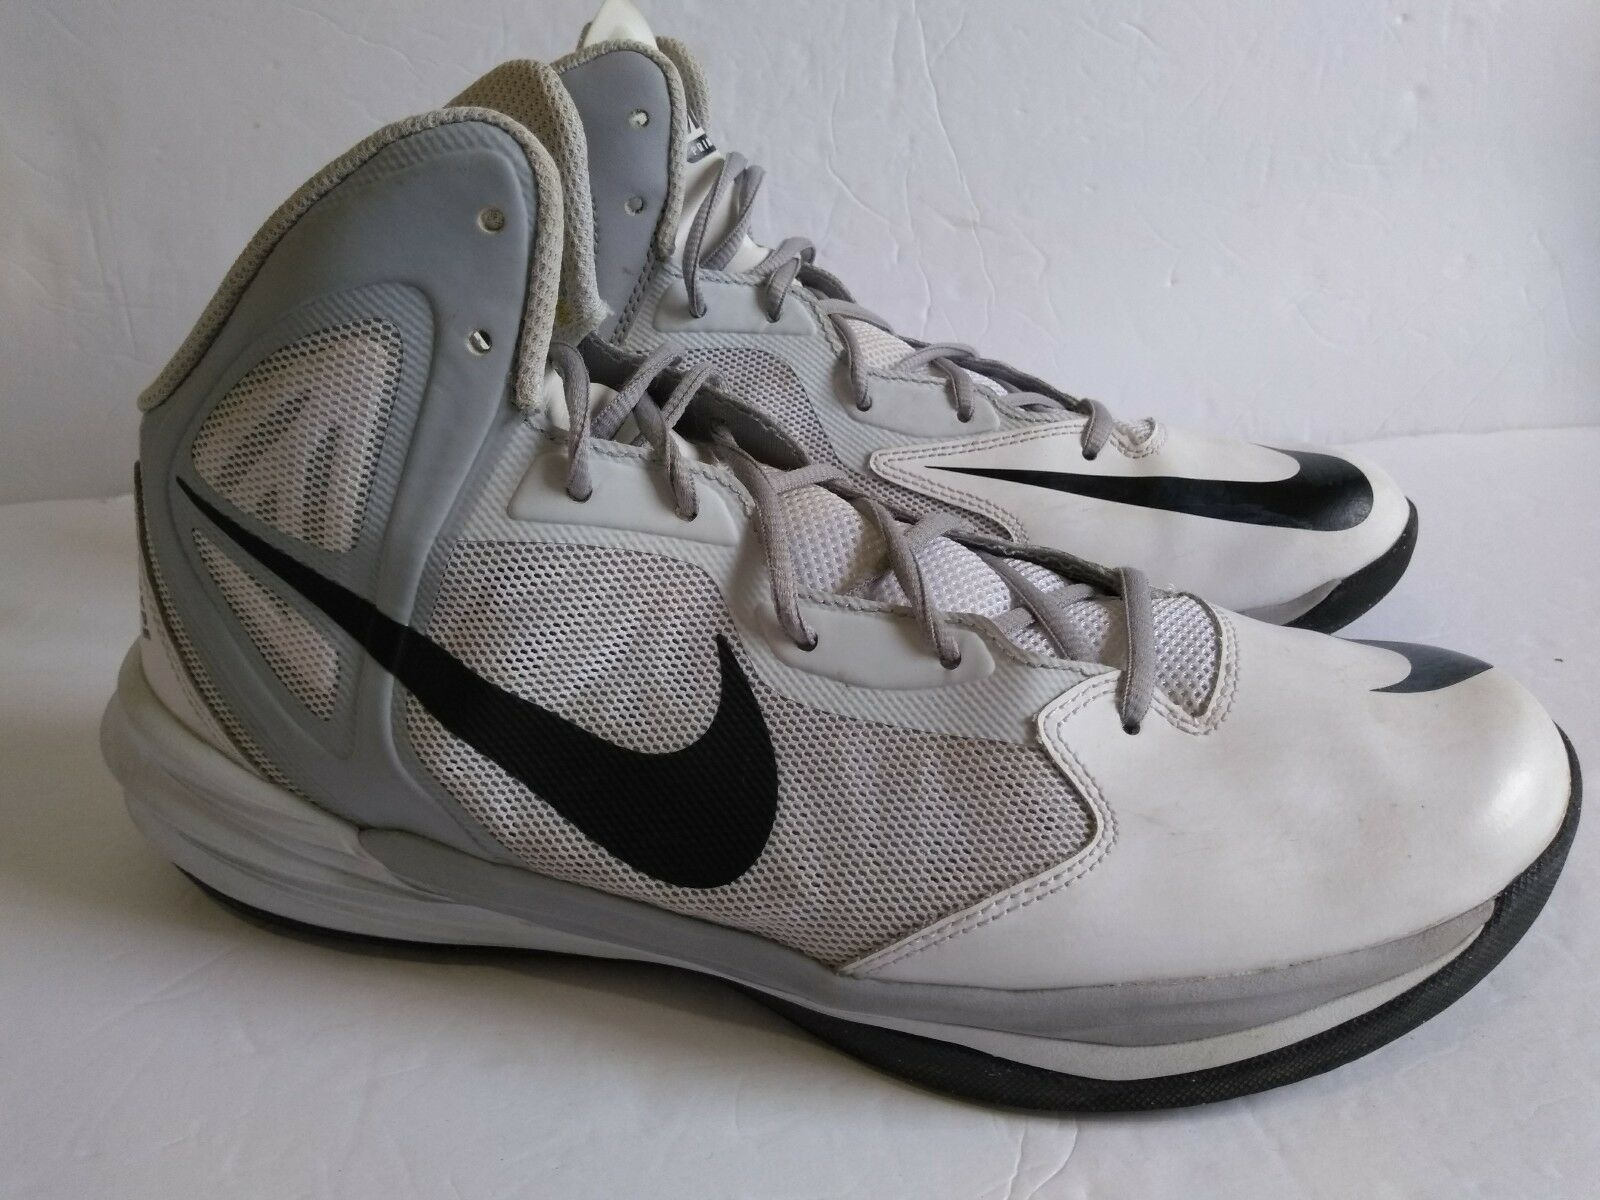 NIKE PRIME HYPE DF 683705 WHITE/BLACK  BASKETBALL SHOES SIZE 11  The latest discount shoes for men and women